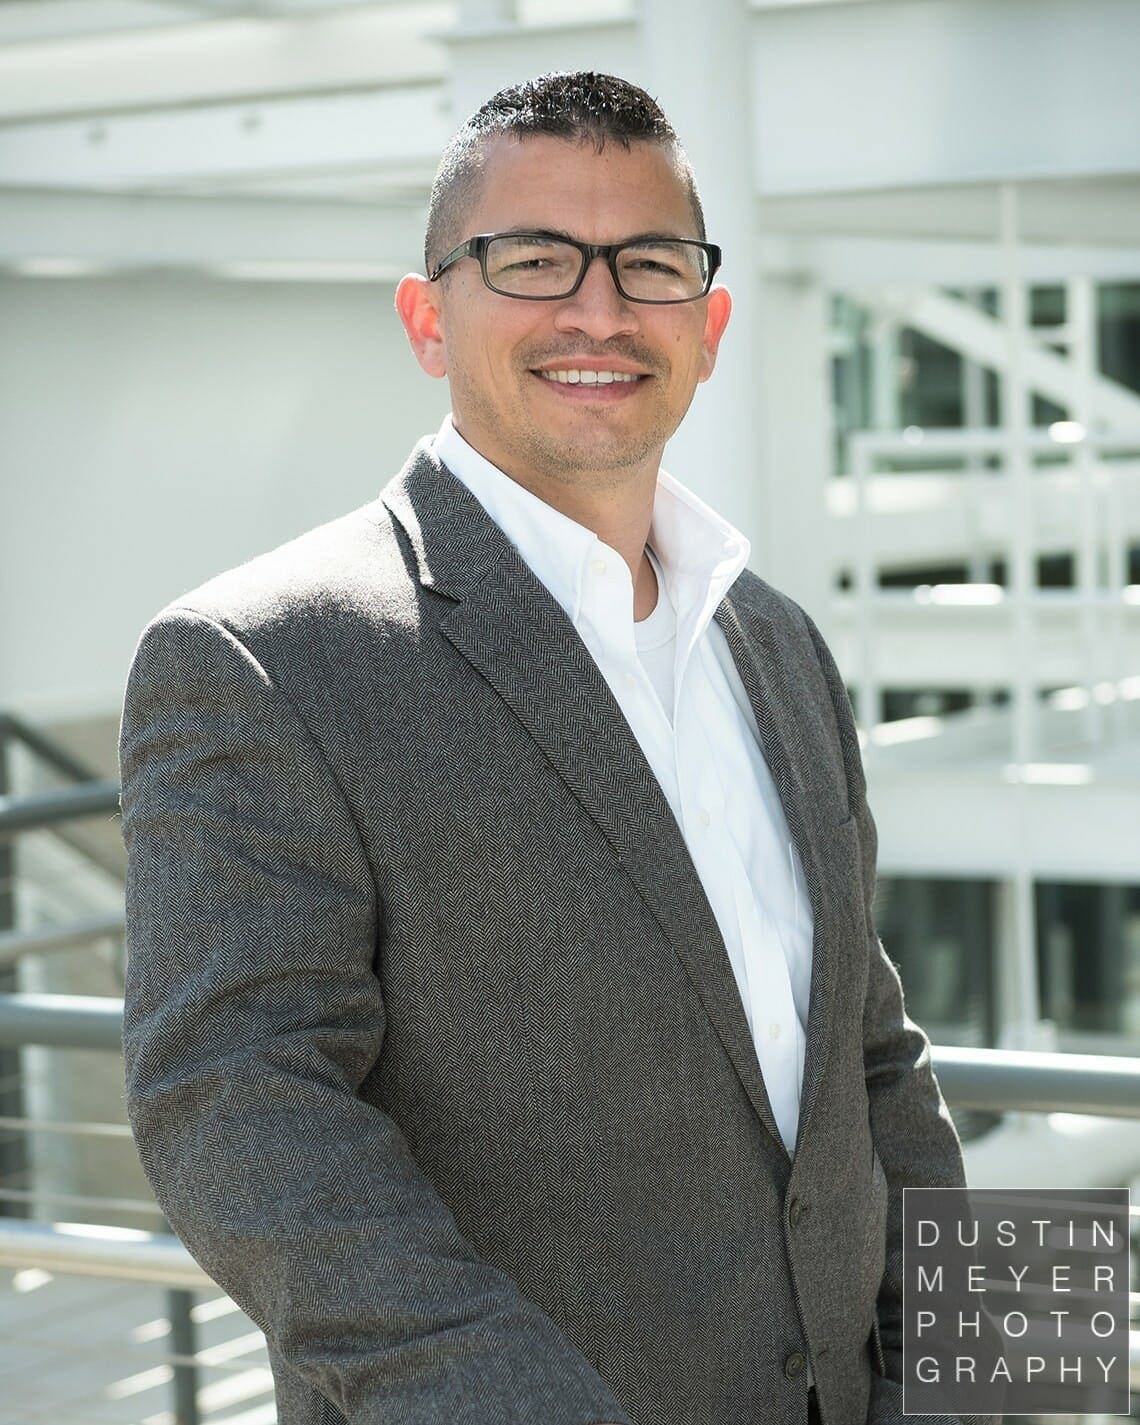 professional headshot tips male business headshot glasses and gray suit outdoors industrial modern contemporary headshots